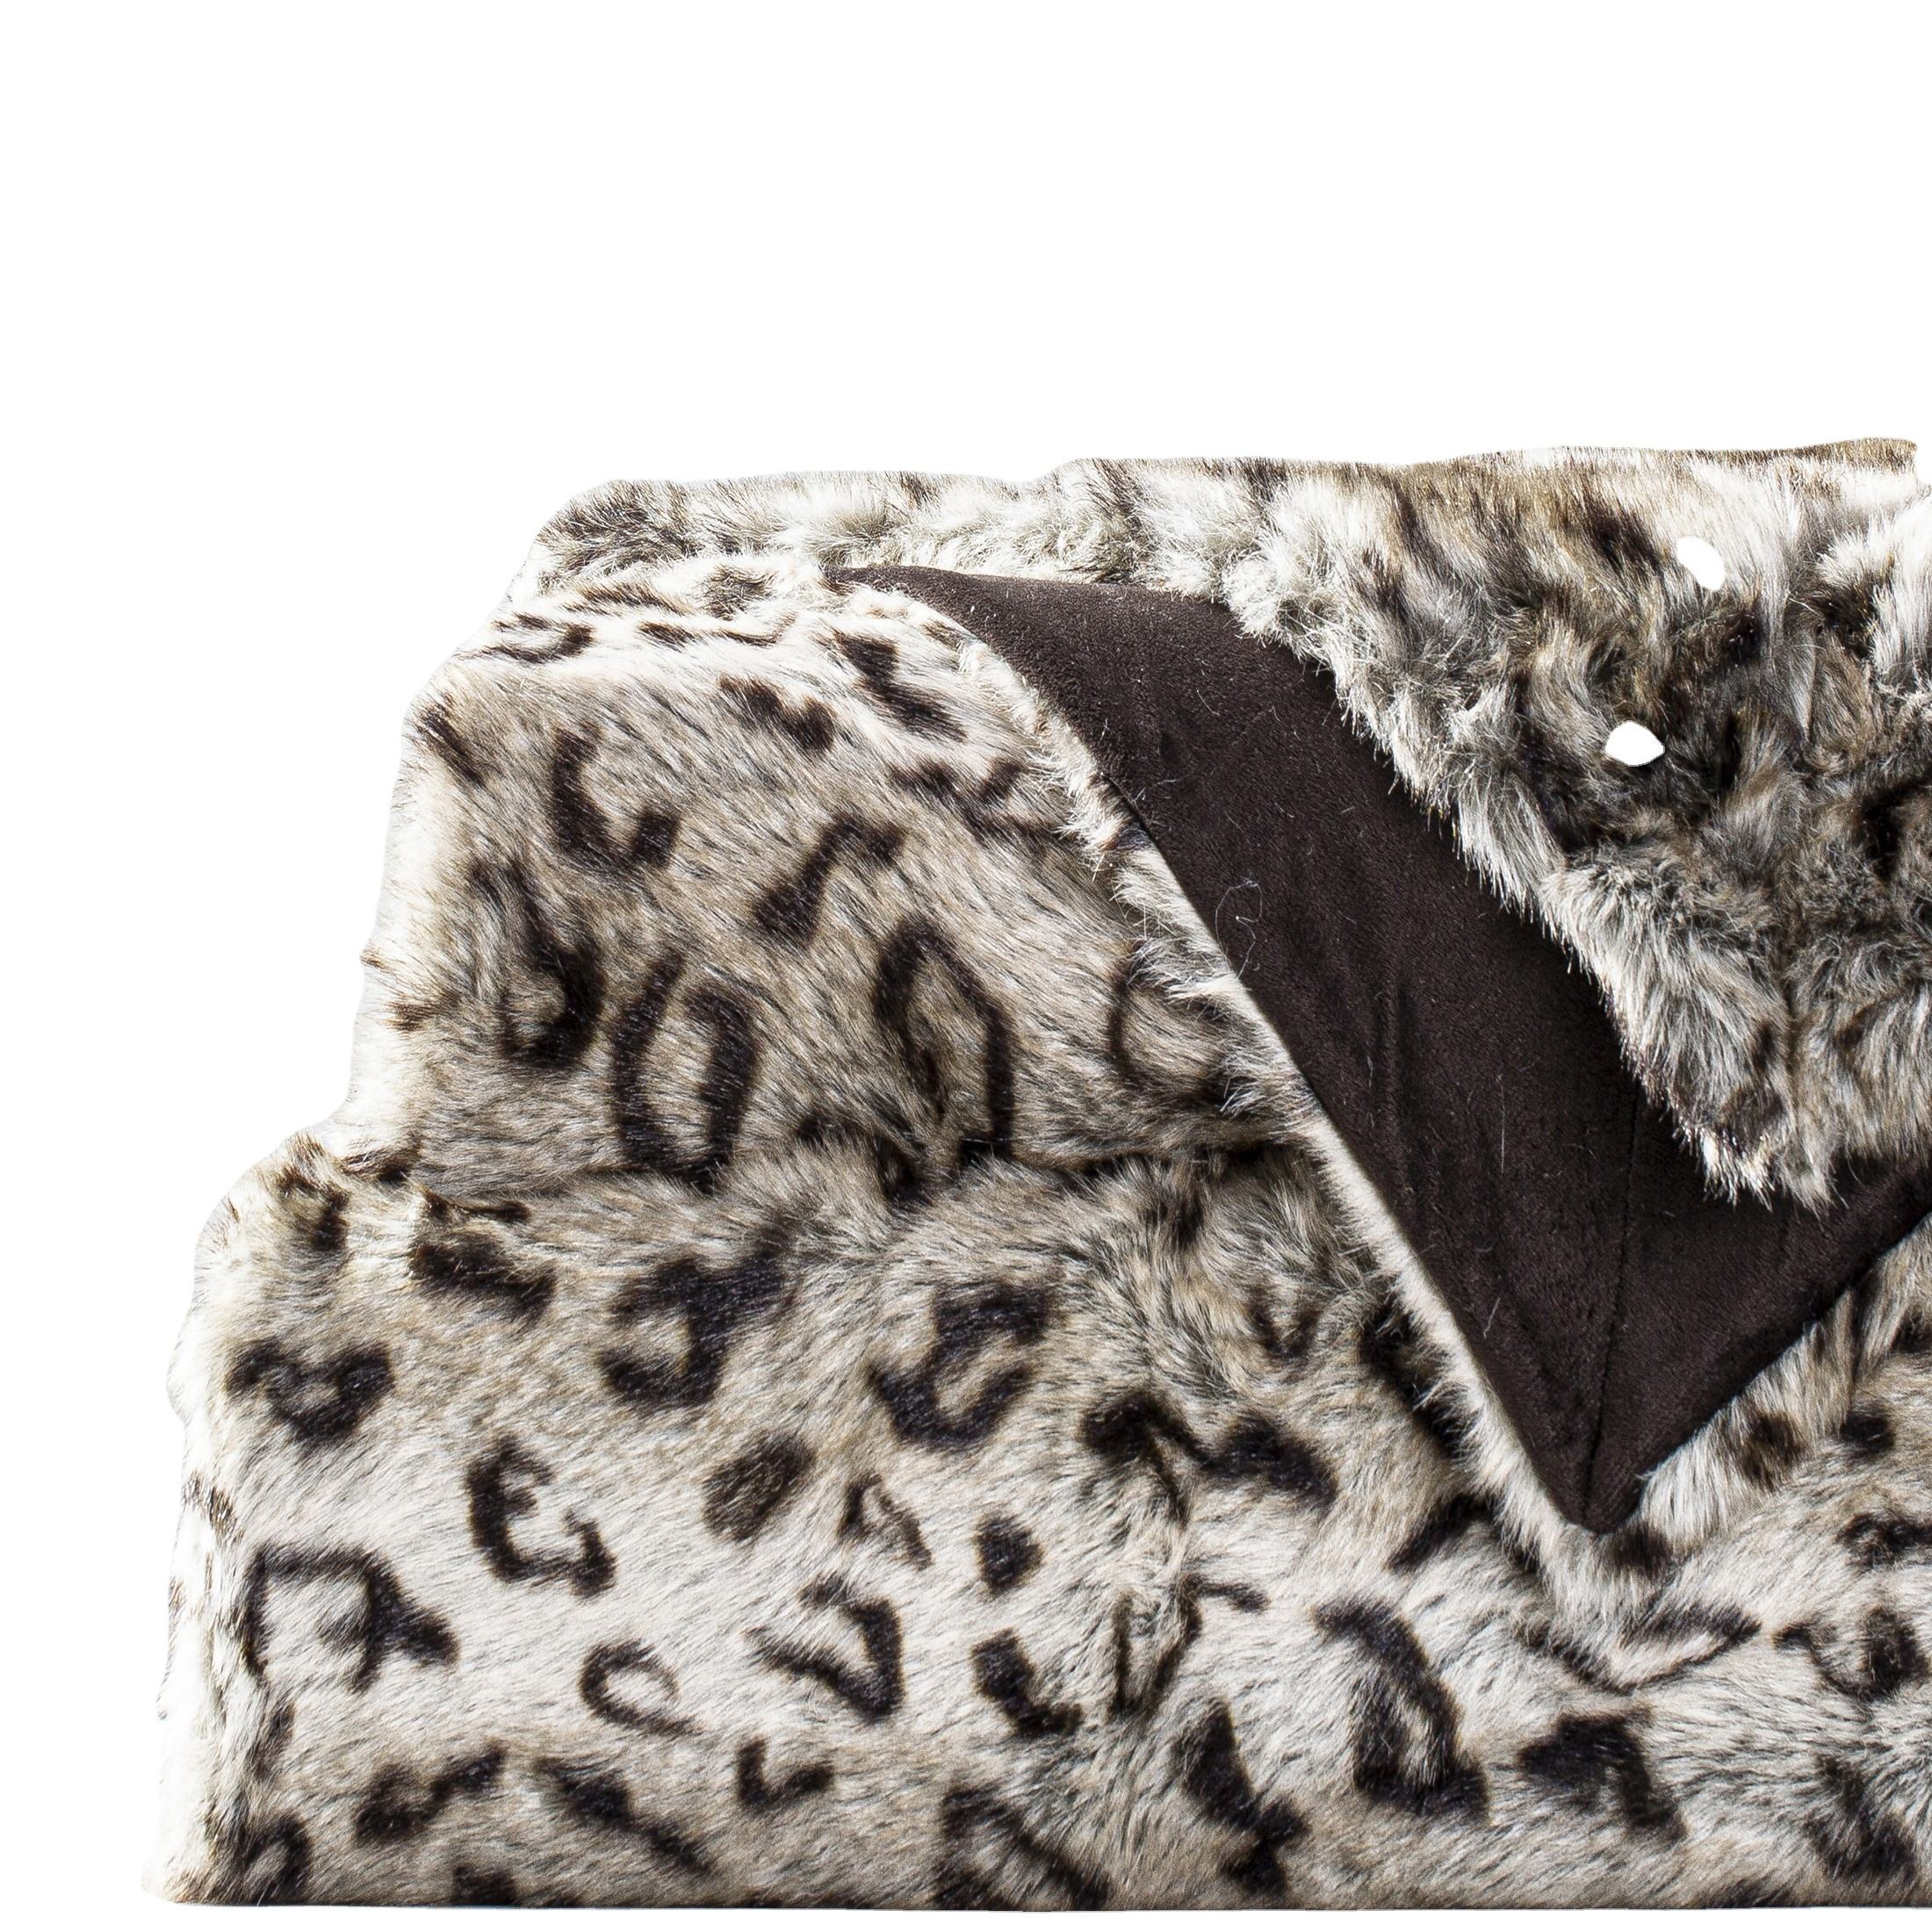 Afresh alternative everincreasing popular luxury new design leopard-print faux fur throws and blankets